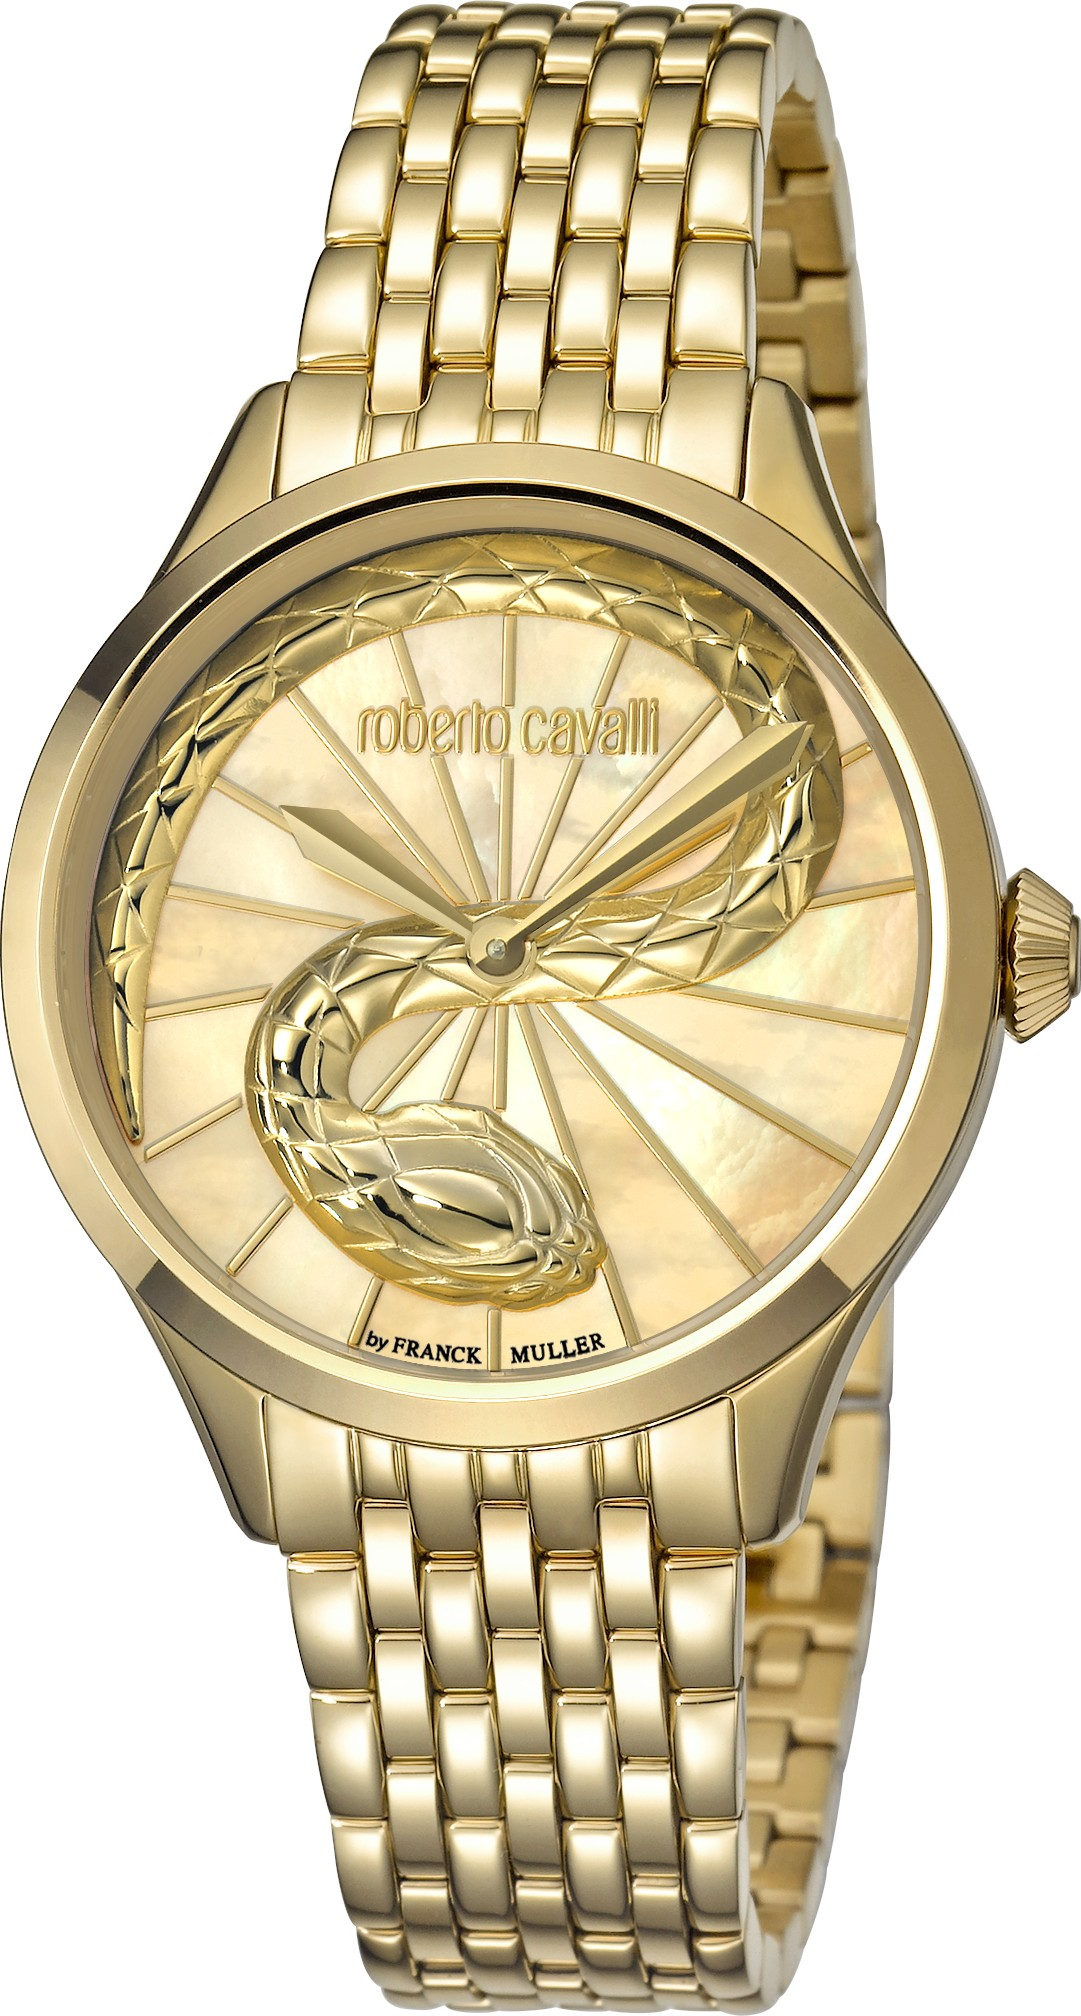 Roberto Cavalli RC-35 Champagne Watch 34